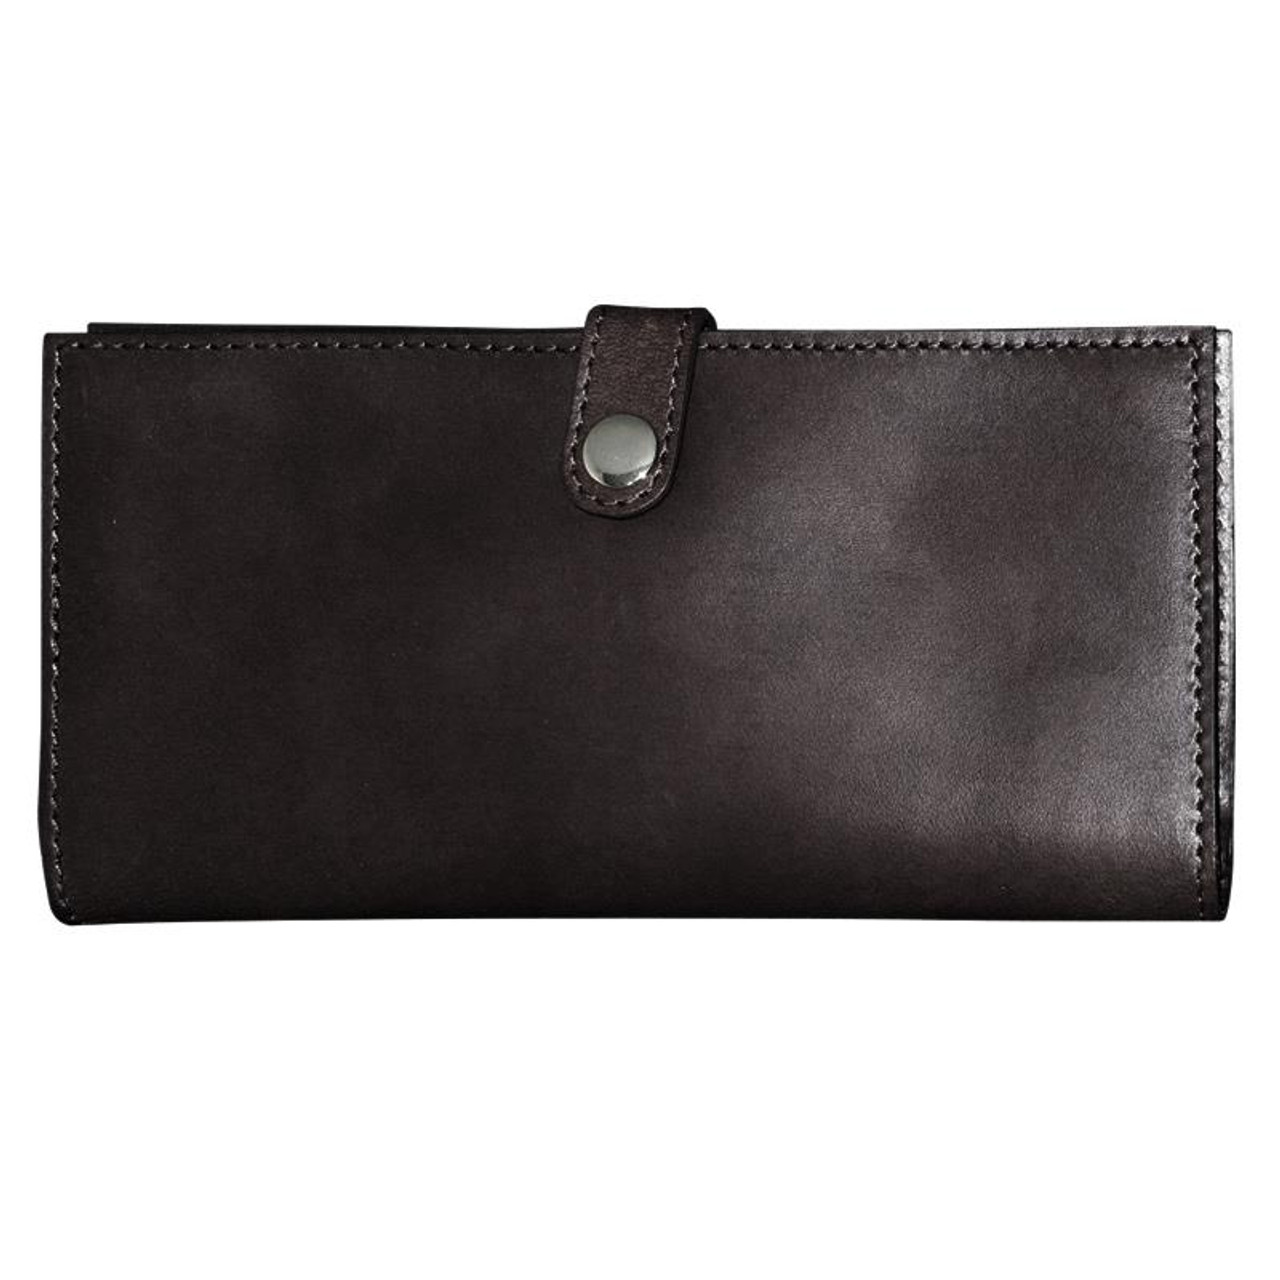 Teales Leather Shotgun and Firearms Certificate Holder Double Fold Flat